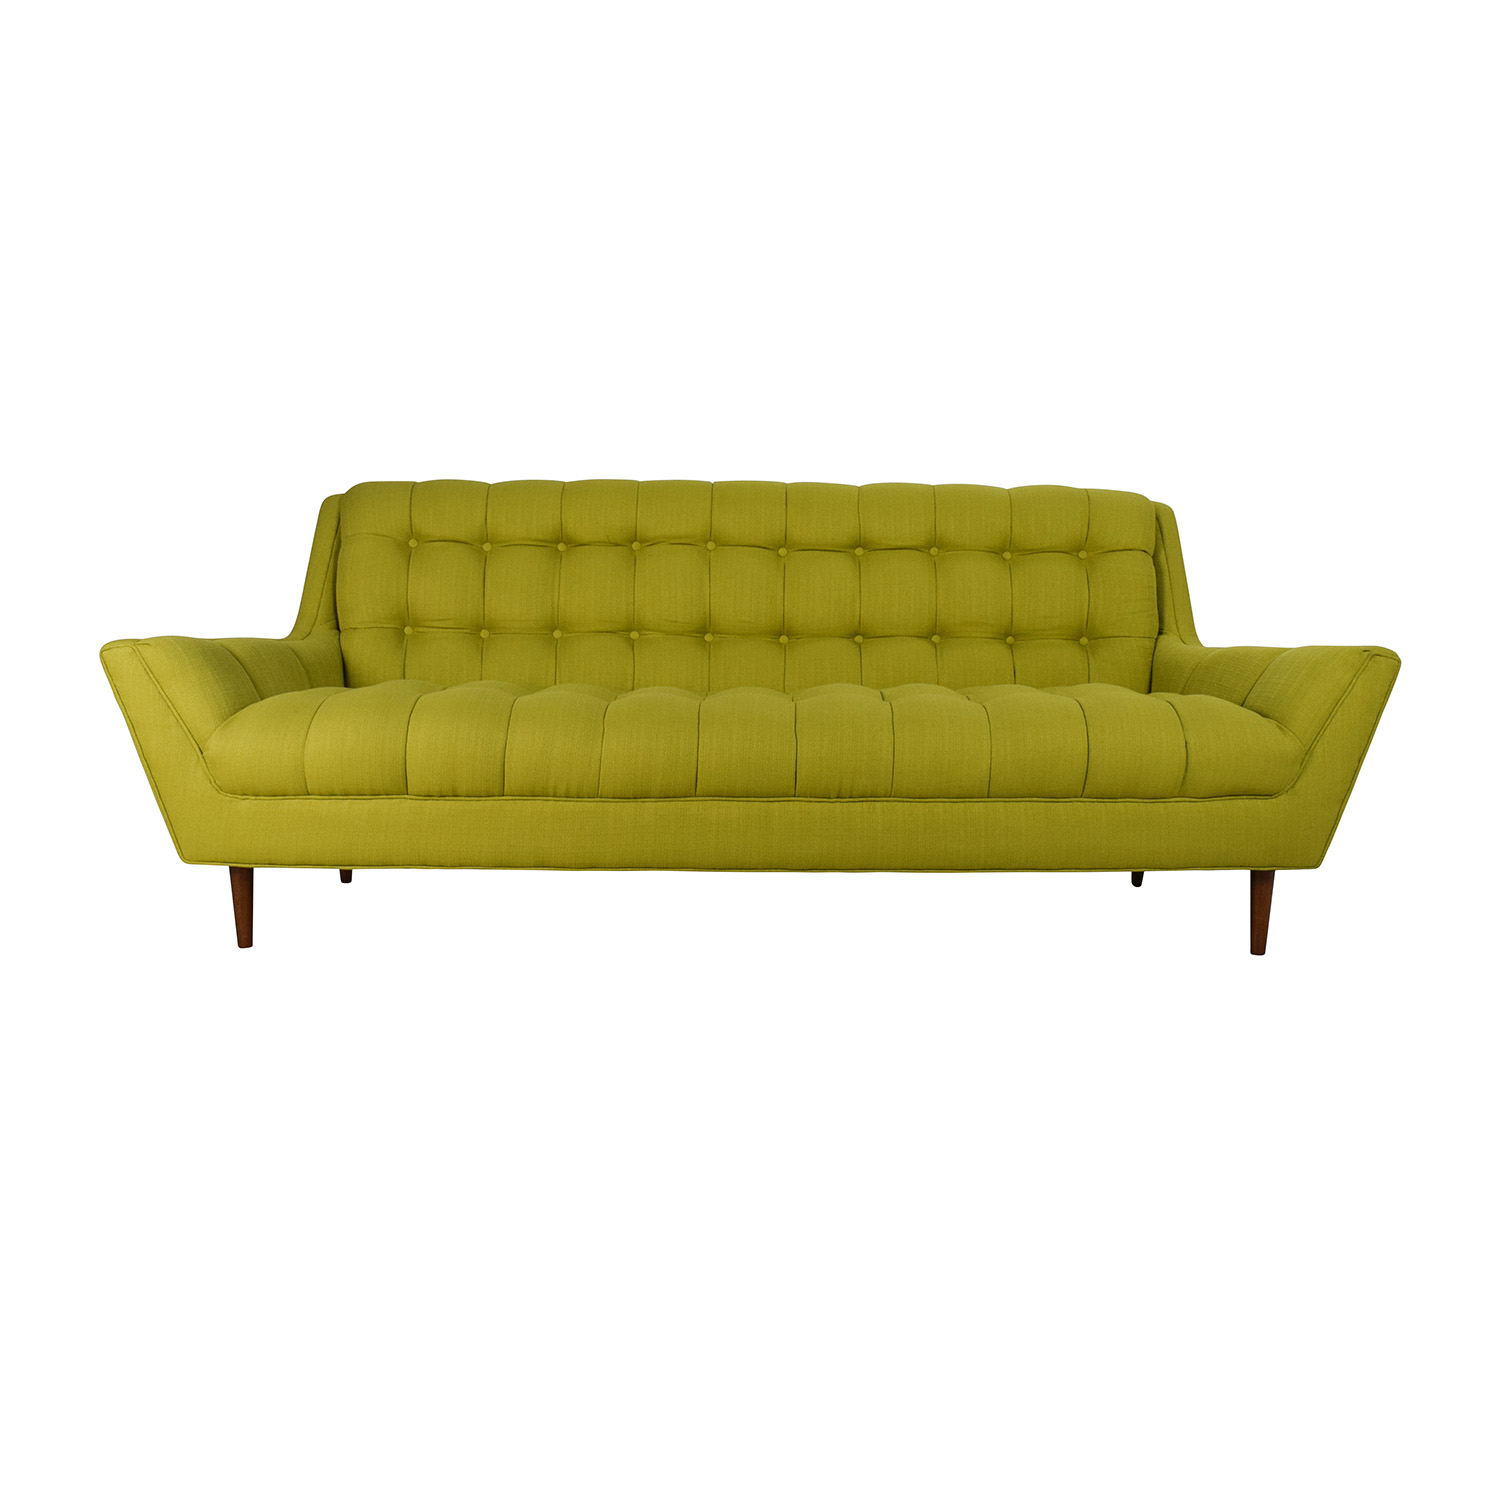 Modway Modway Response Fabric Sofa coupon